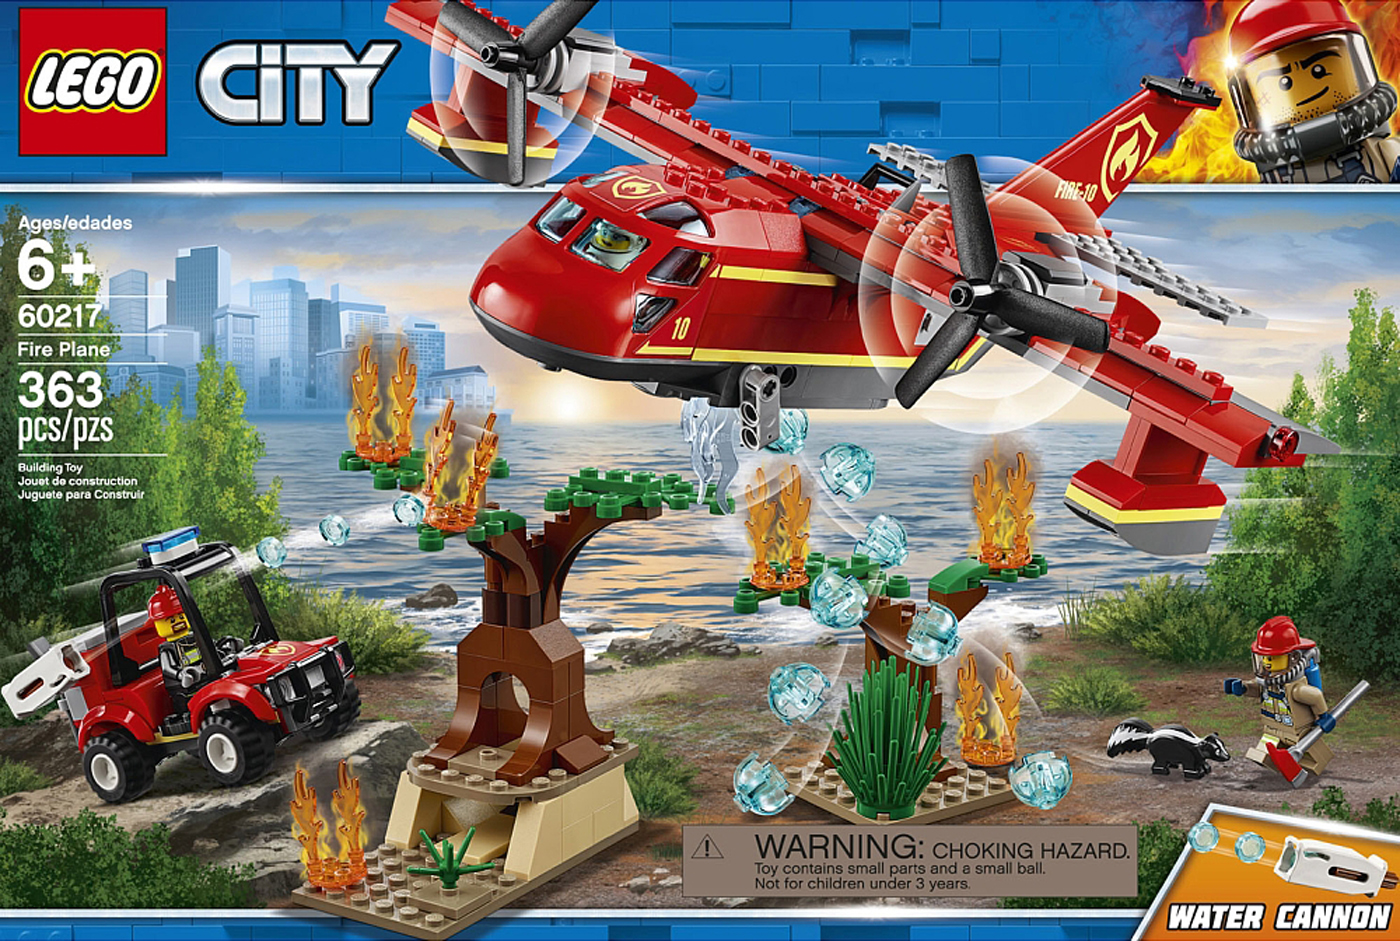 Here S Another 2019 Lego City Firefighter Set The Fire Plane 60217